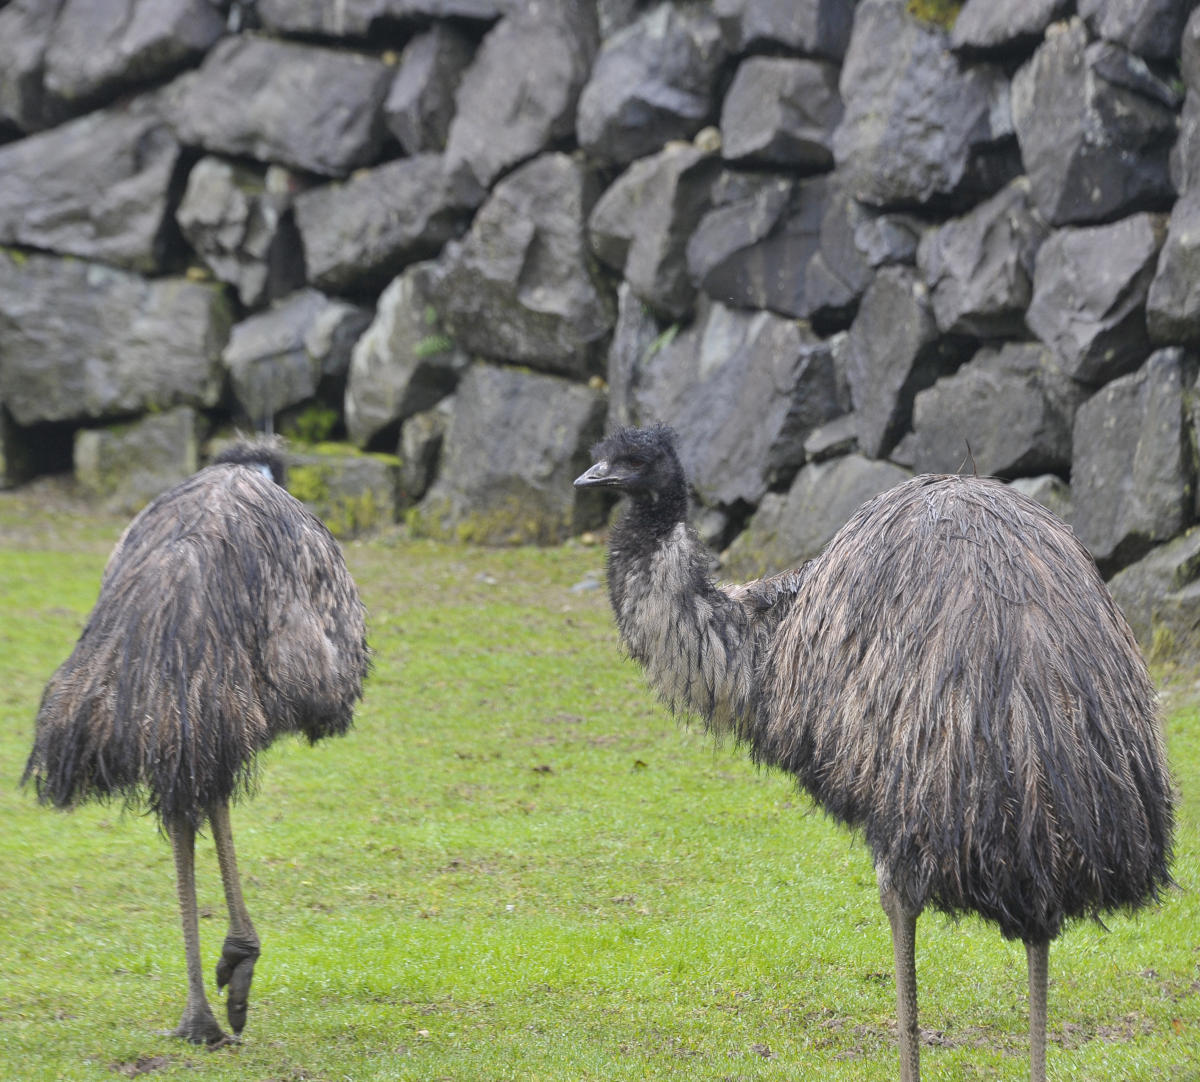 two emus in front of stone wall on grass